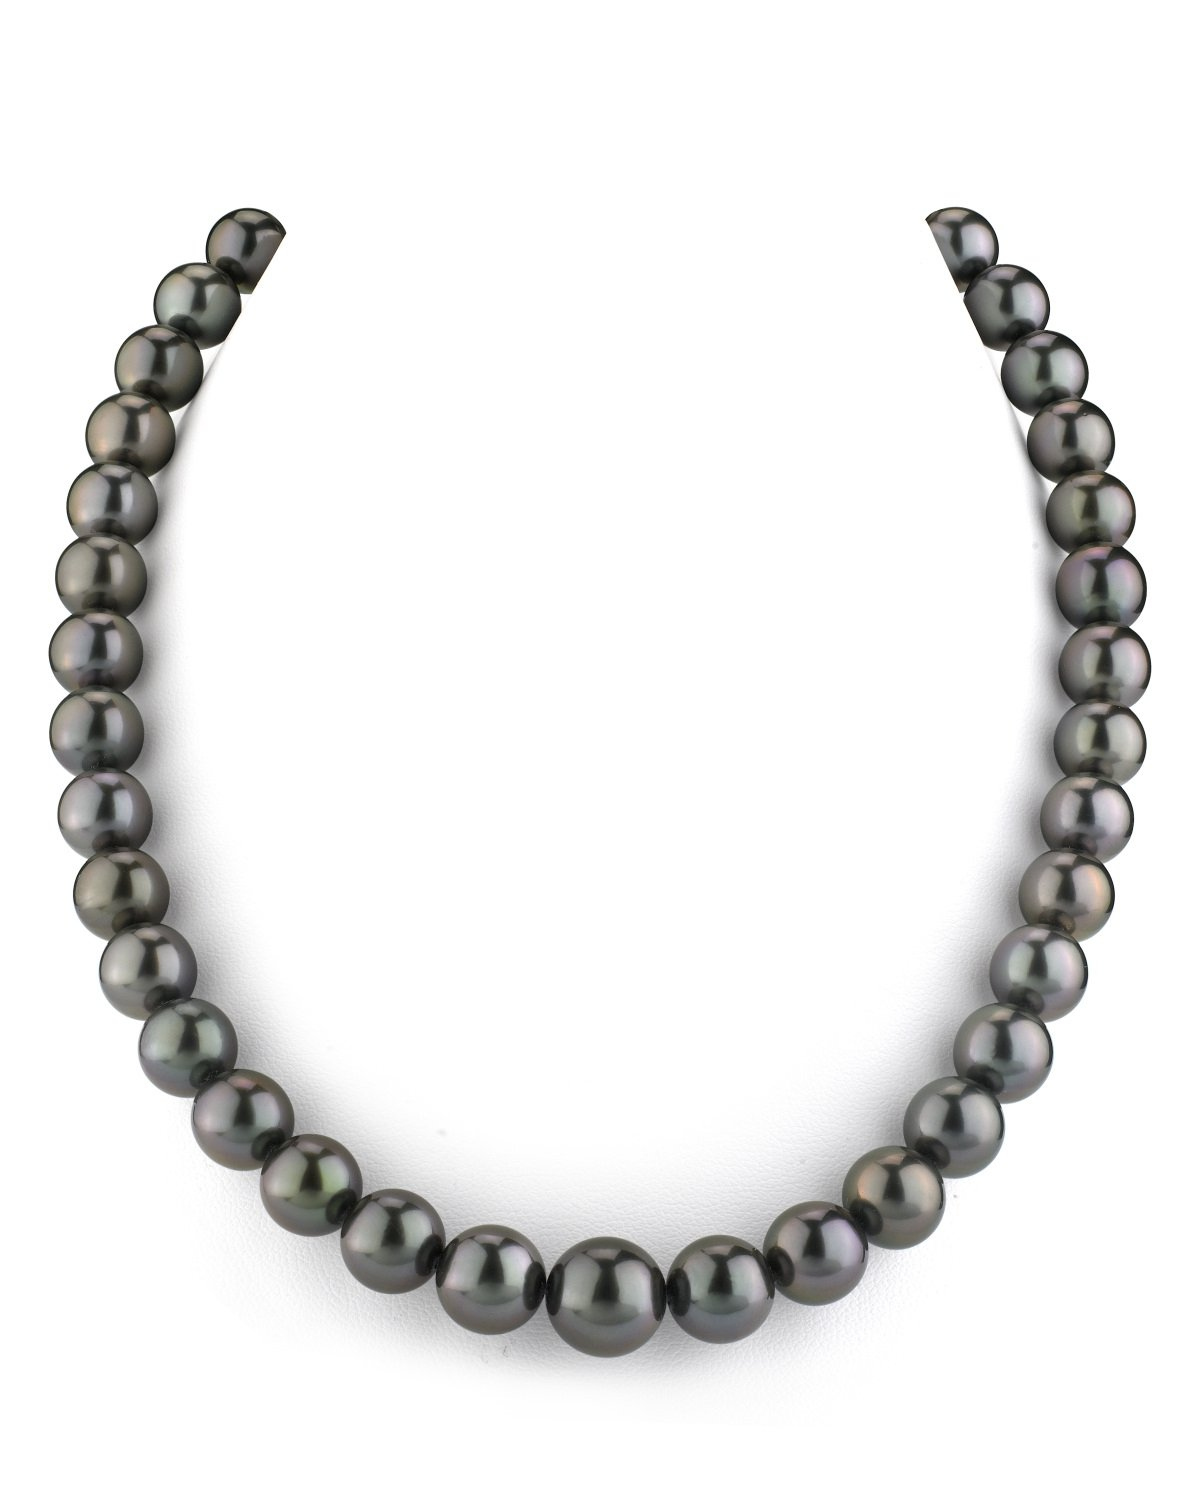 14K Gold 9-11mm GLA CERTIFIED Black Tahitian South Sea Cultured Pearl Necklace - AAAA Quality, 18'' Length